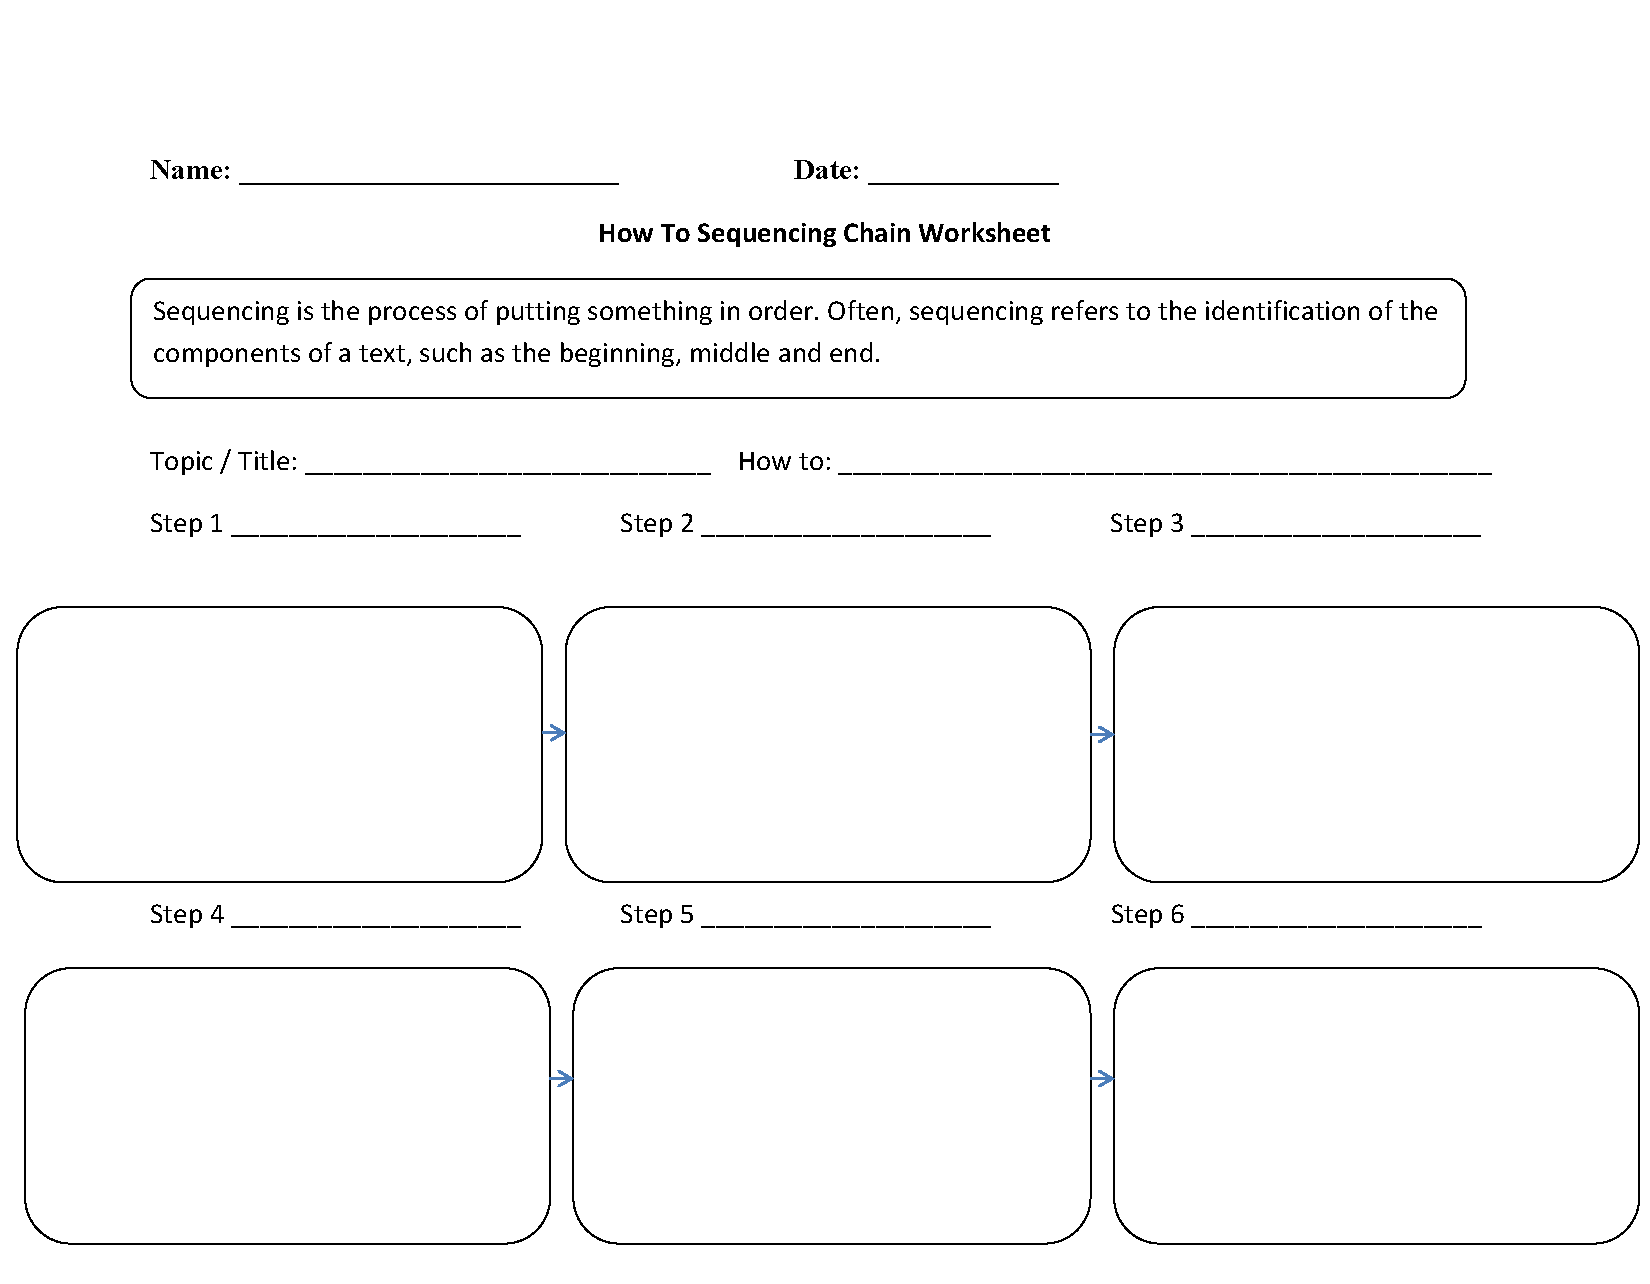 How To Sequencing Chain Worksheets